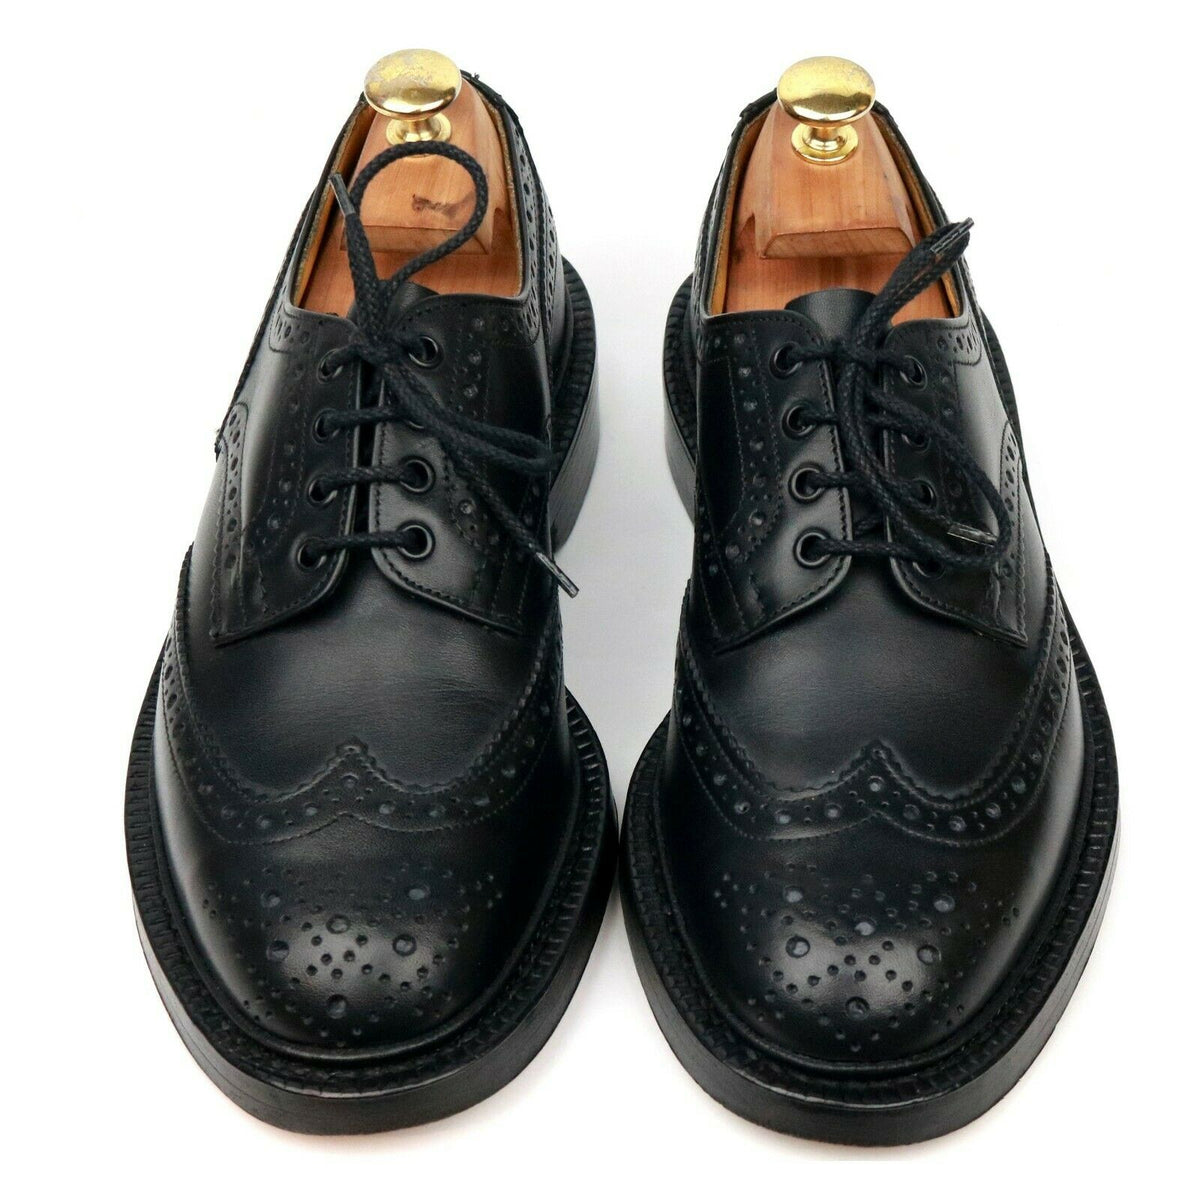 Tricker's 'Keswick' Black Leather Country Derby Brogues UK 7